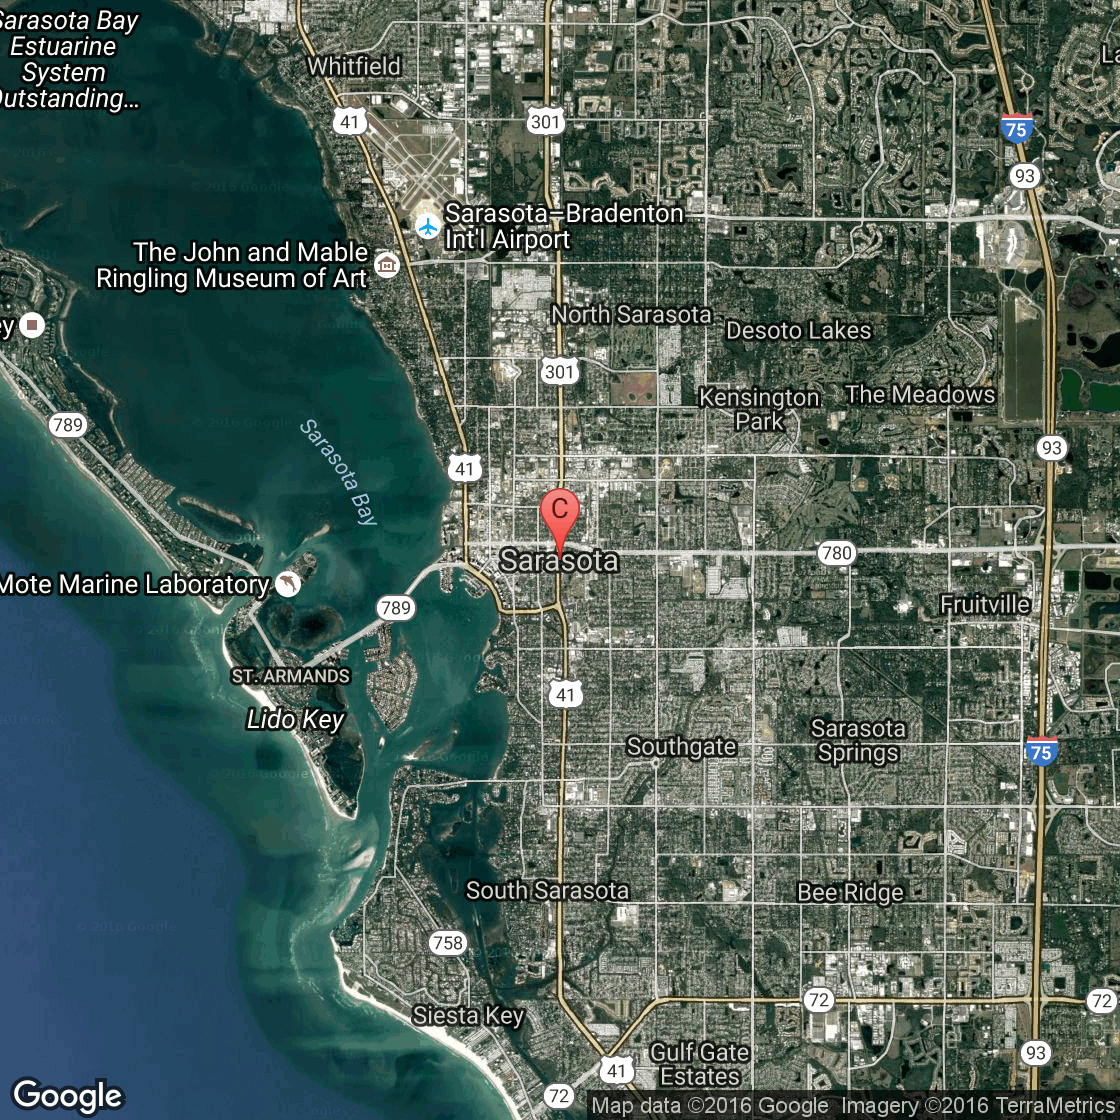 Oceanfront Hotels In Sarasota | Usa Today - Map Of Hotels In Sarasota Florida